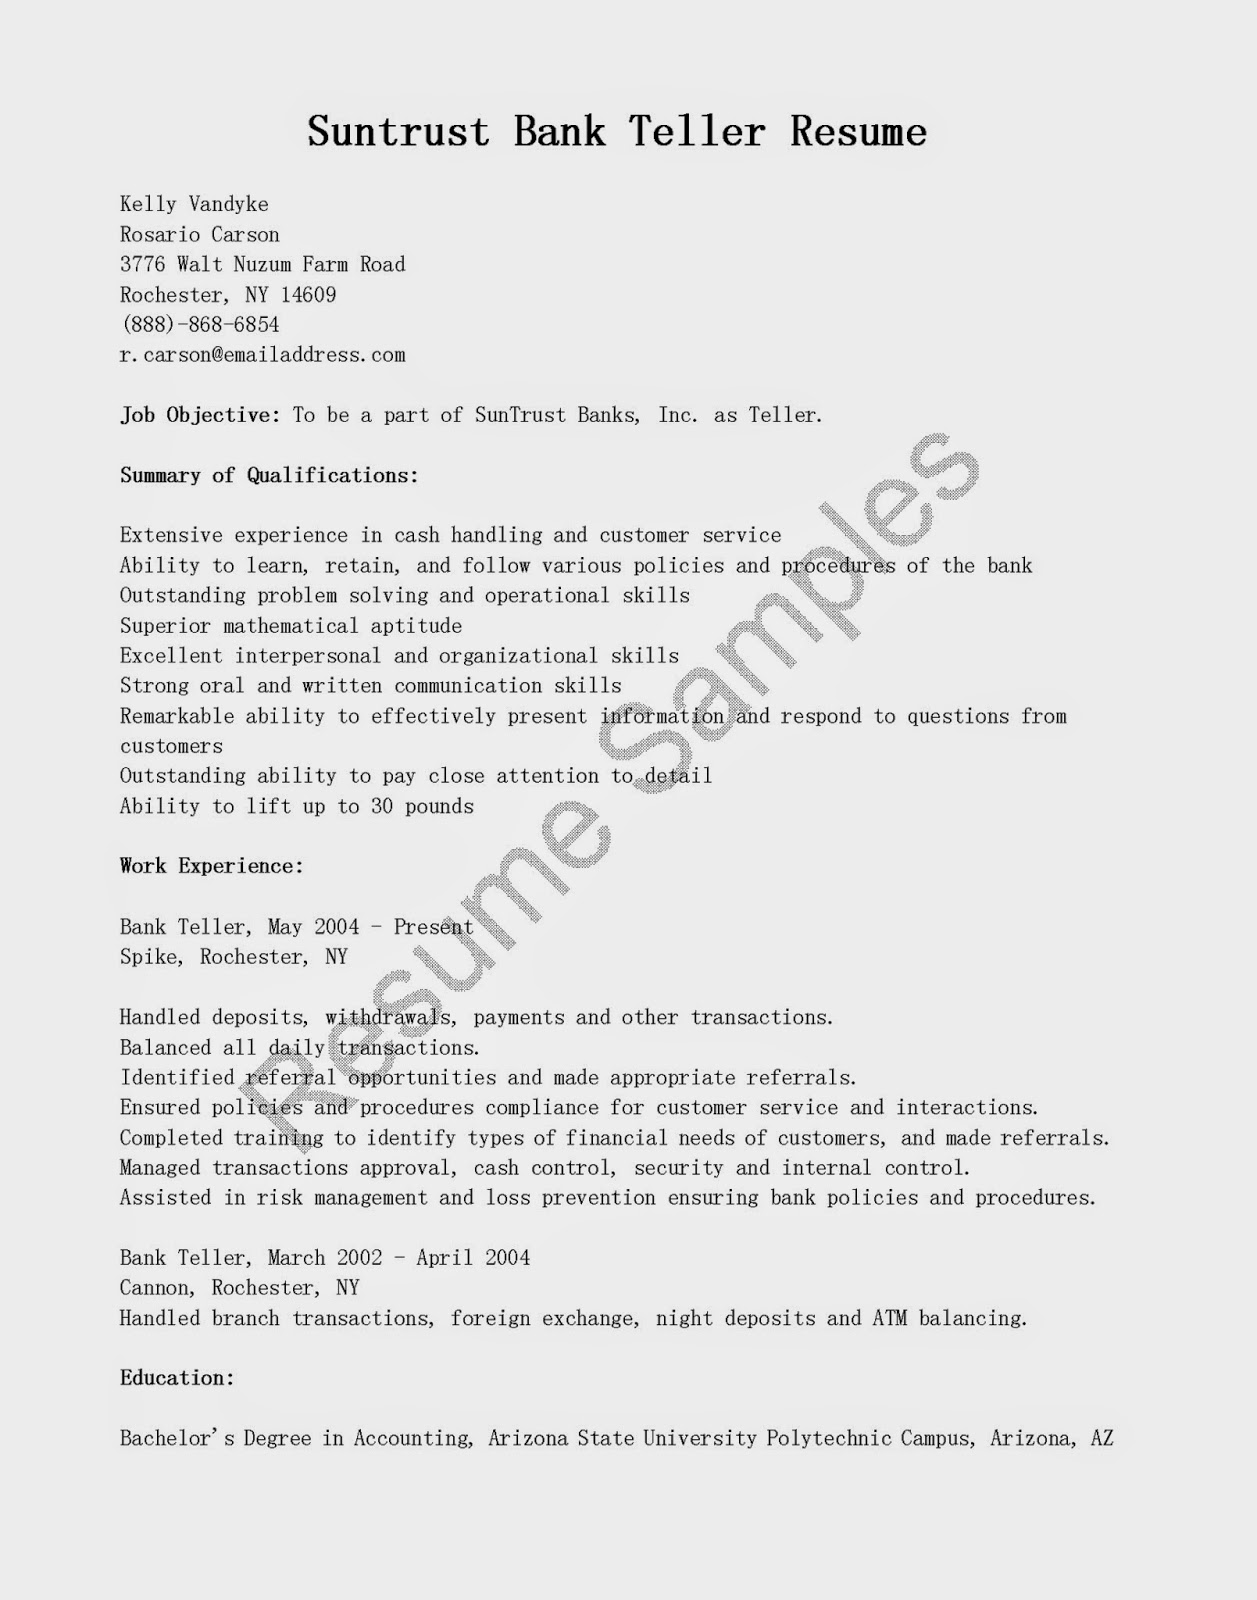 essay bank essay for and against project manager resume cover  essay for and against project manager resume cover sheet harvard customer essay service cecile veilhan expository